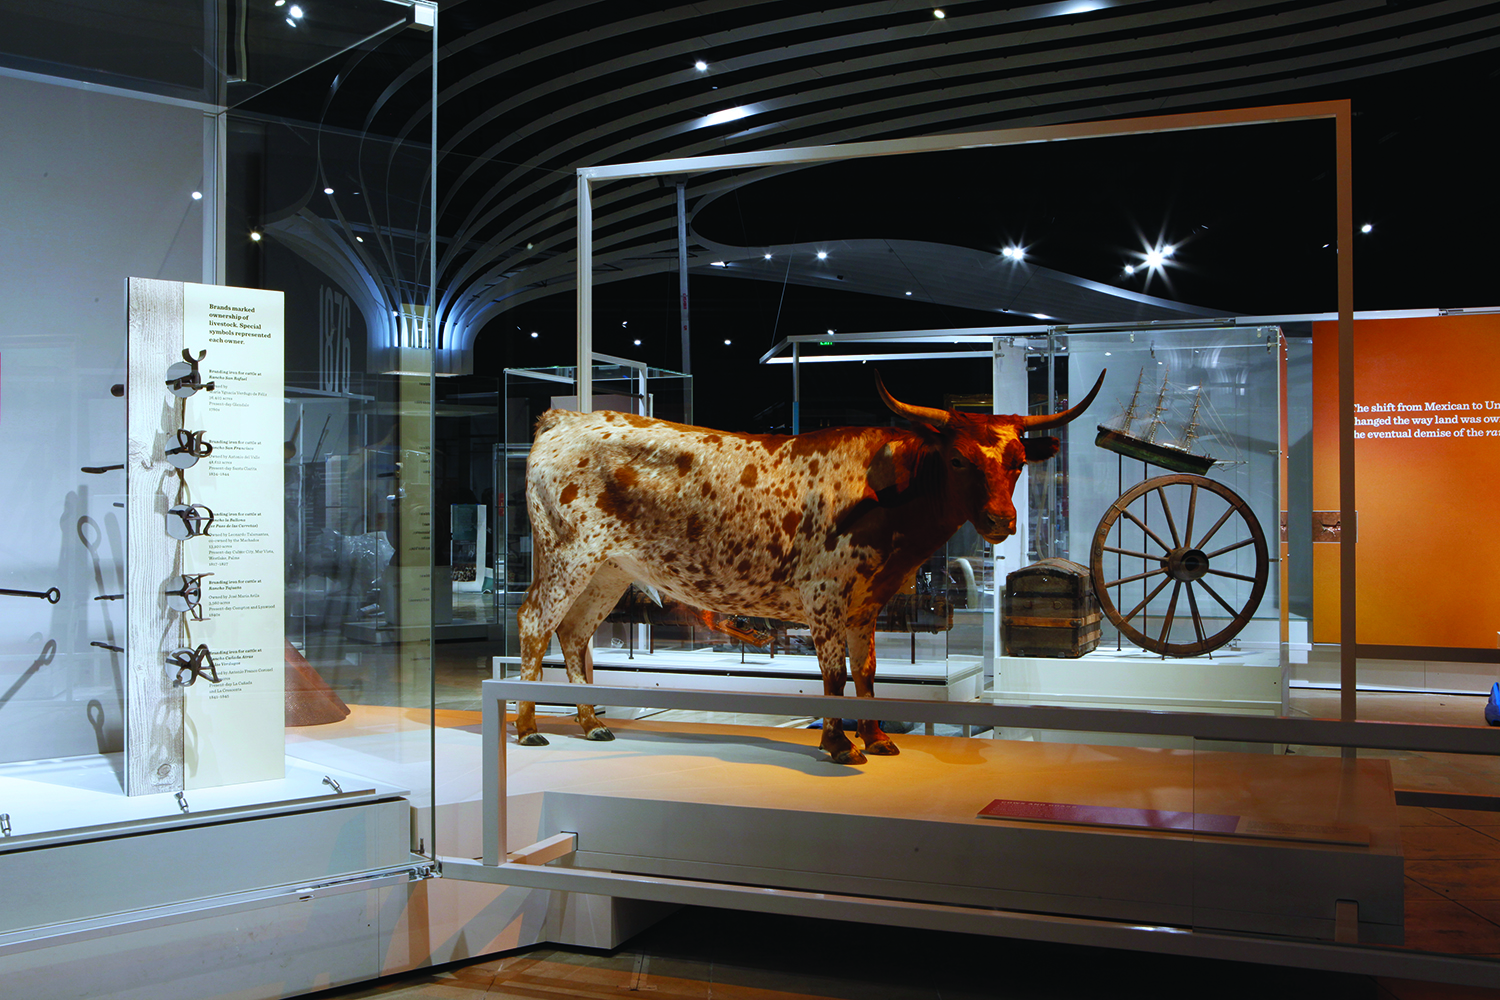 What do cows have to do with changing L.A.? Go to the NHM and find out! Photo: Natural History Museum of Los Angeles County